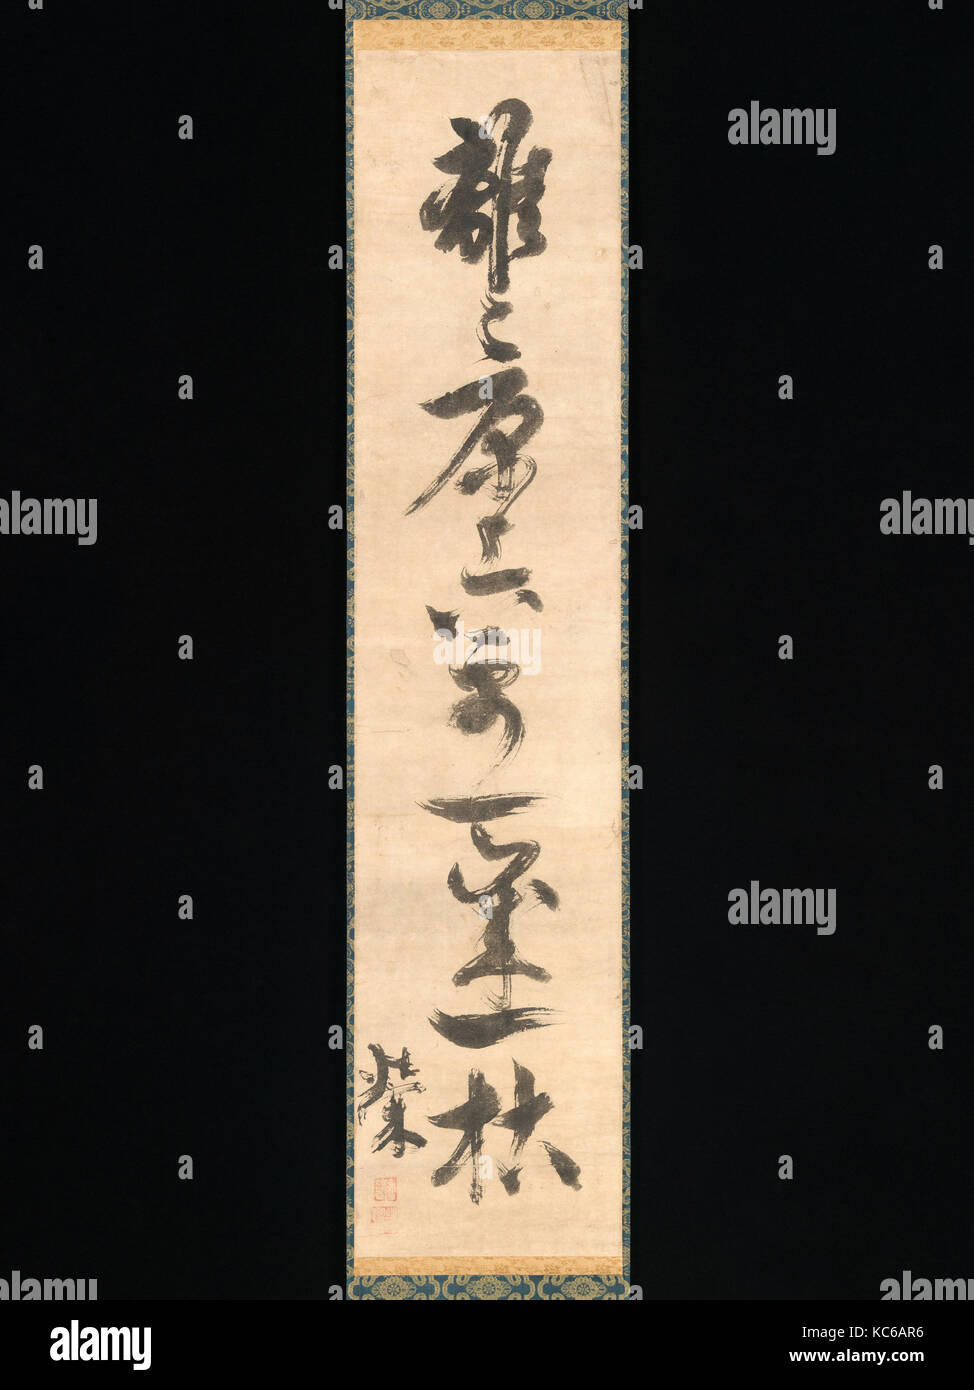 Couplet from the Chinese Poem Grasses by Bai Juyi, 「離離原上草一歳一枯榮」 (白居易『草』より), Motsurin Jōtō, 15th century - Stock Image